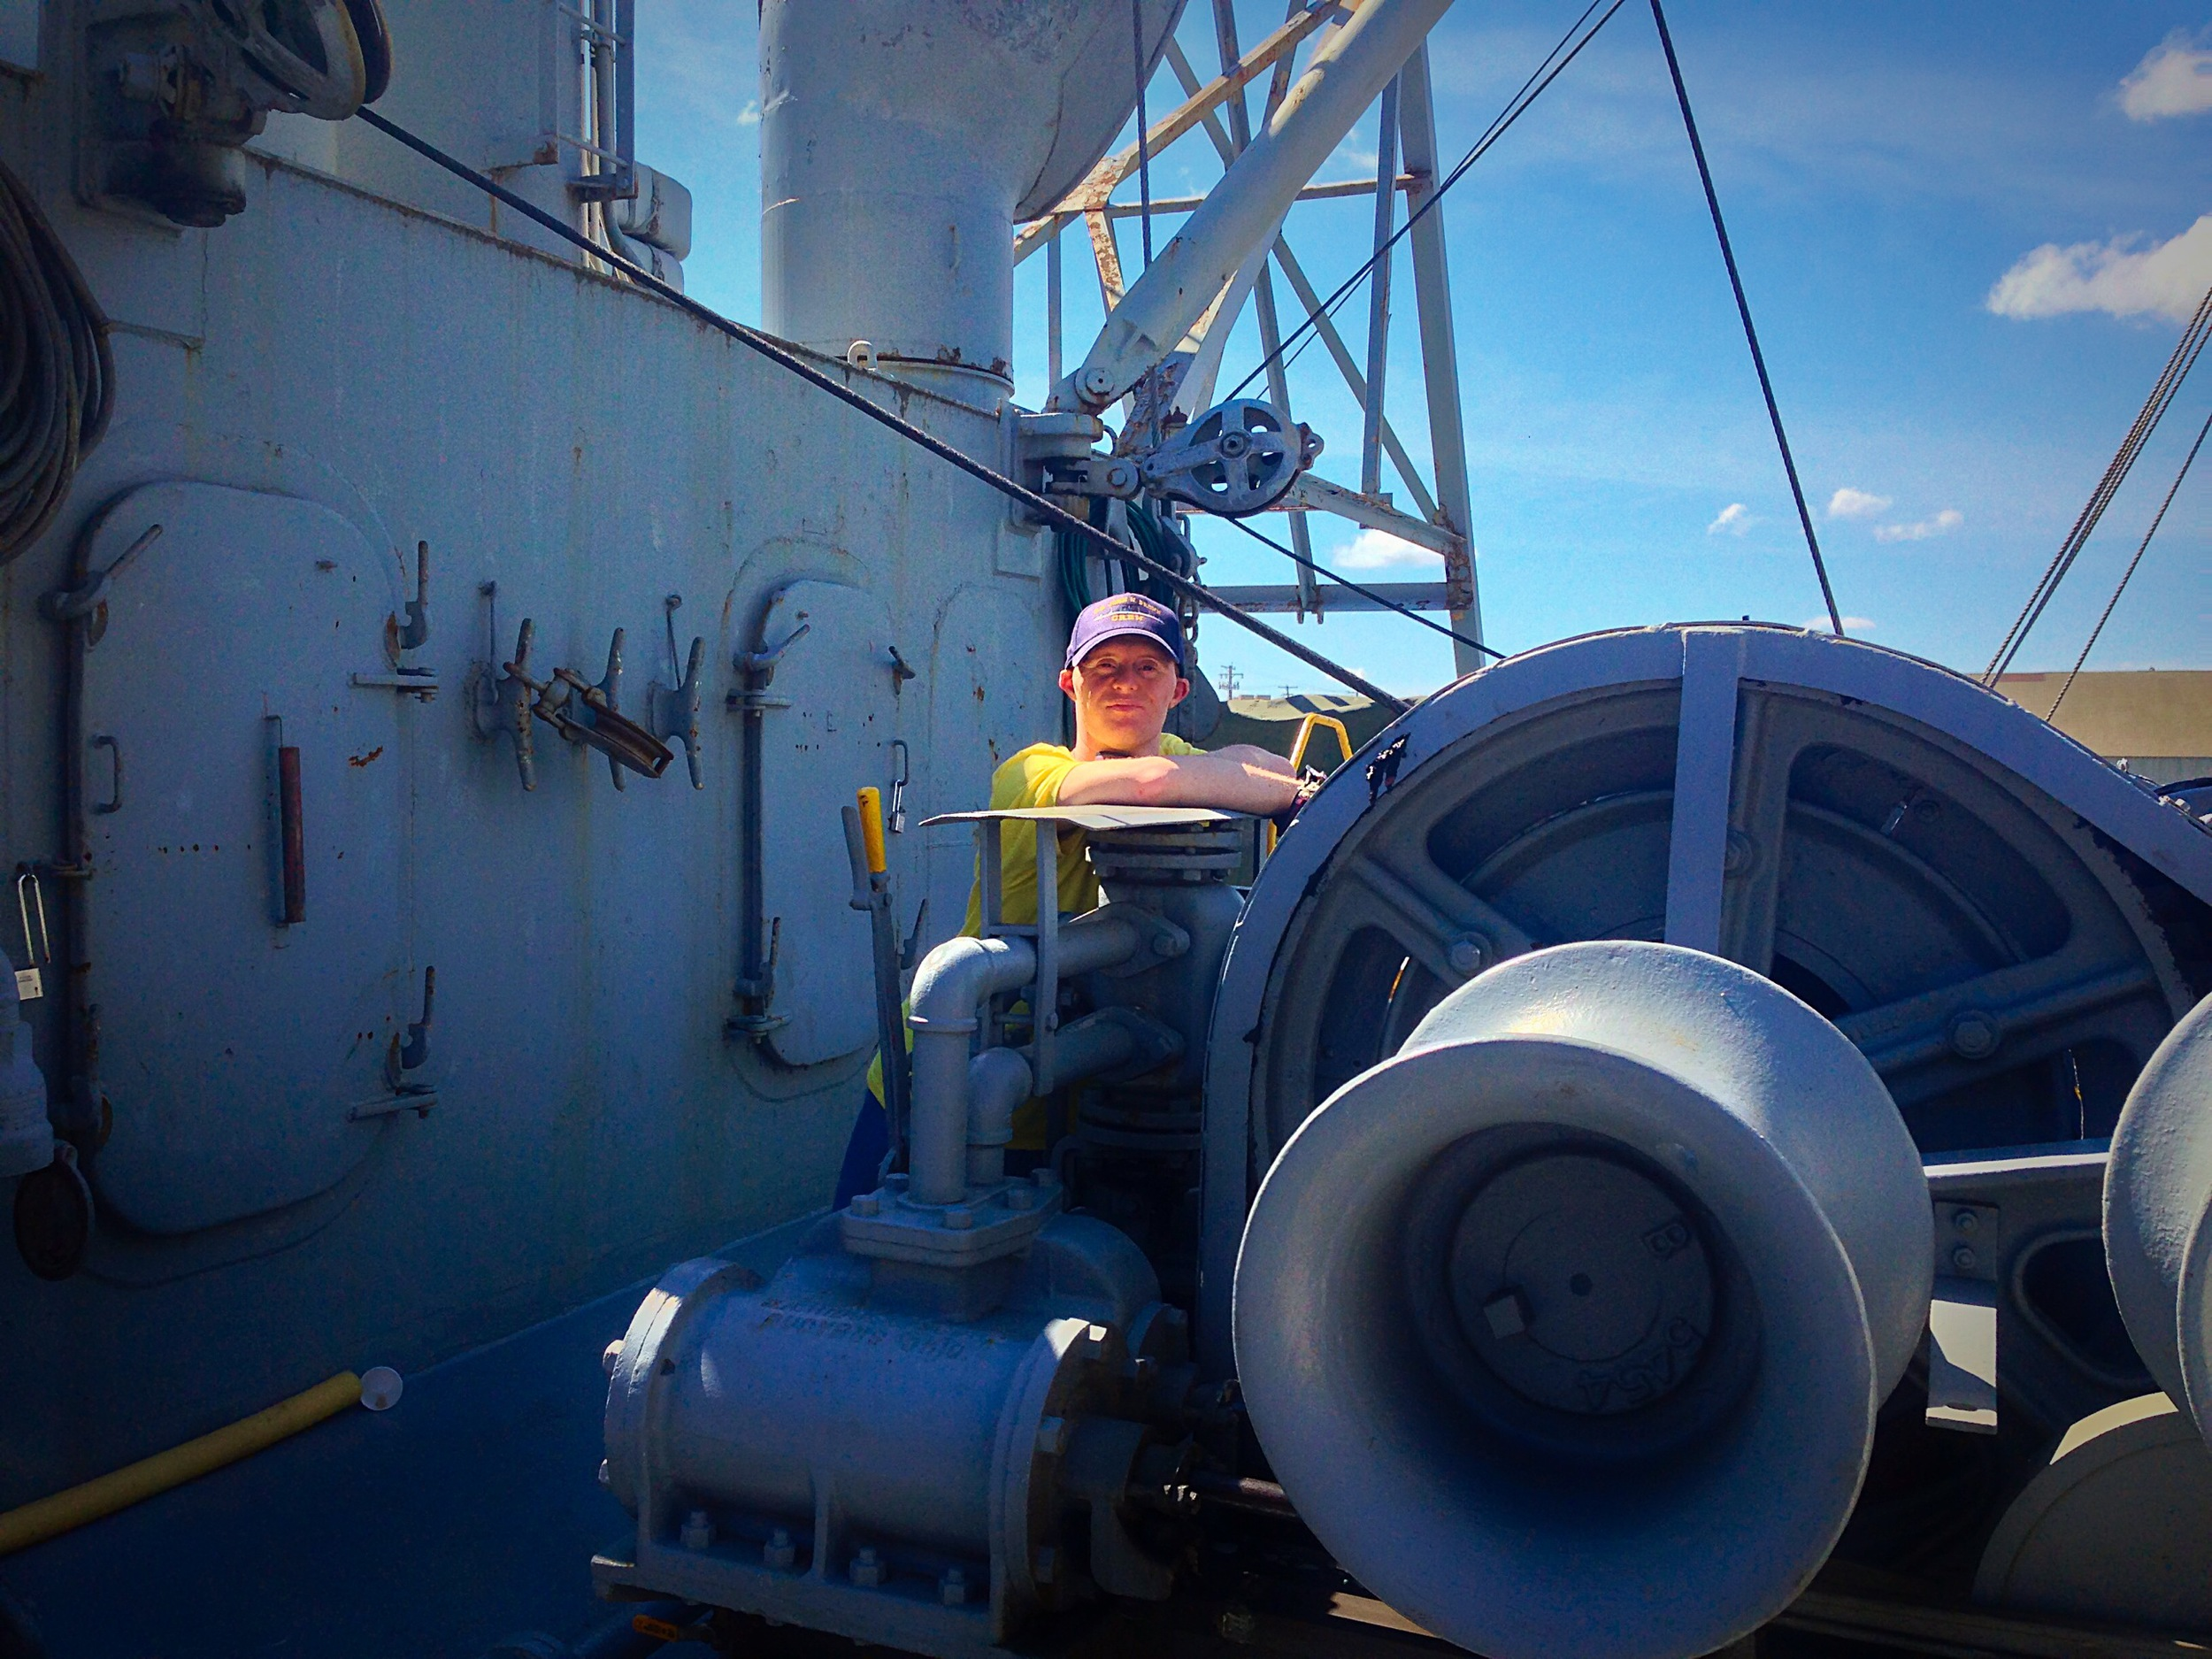 Howard's son, Andrew, is seen here during some down time betweenoperating the ship's cargo gear. Andrew is also an active volunteer, and valued member of the crew.